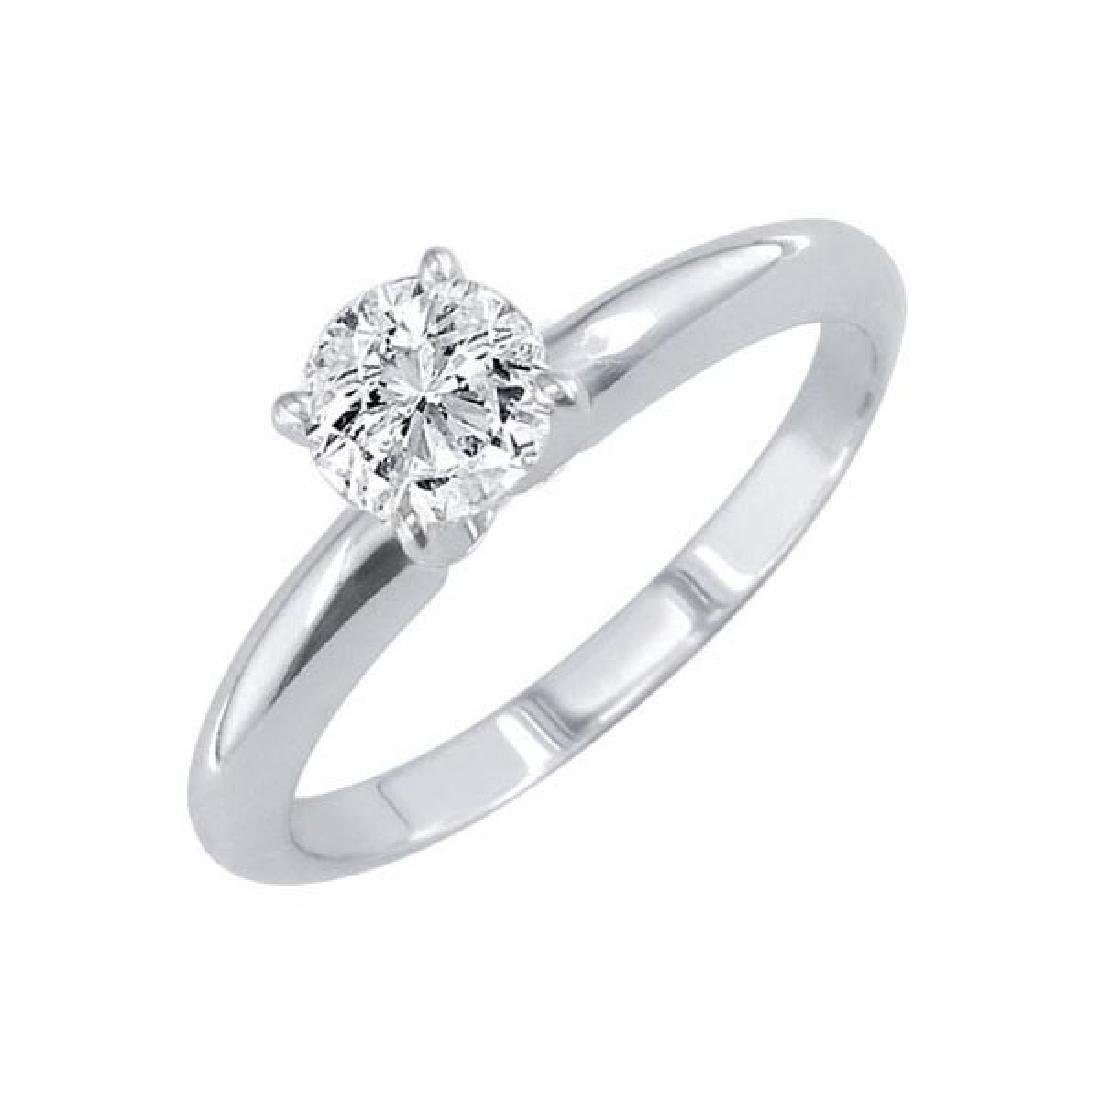 Certified 1.13 CTW Round Diamond Solitaire 14k Ring K/S